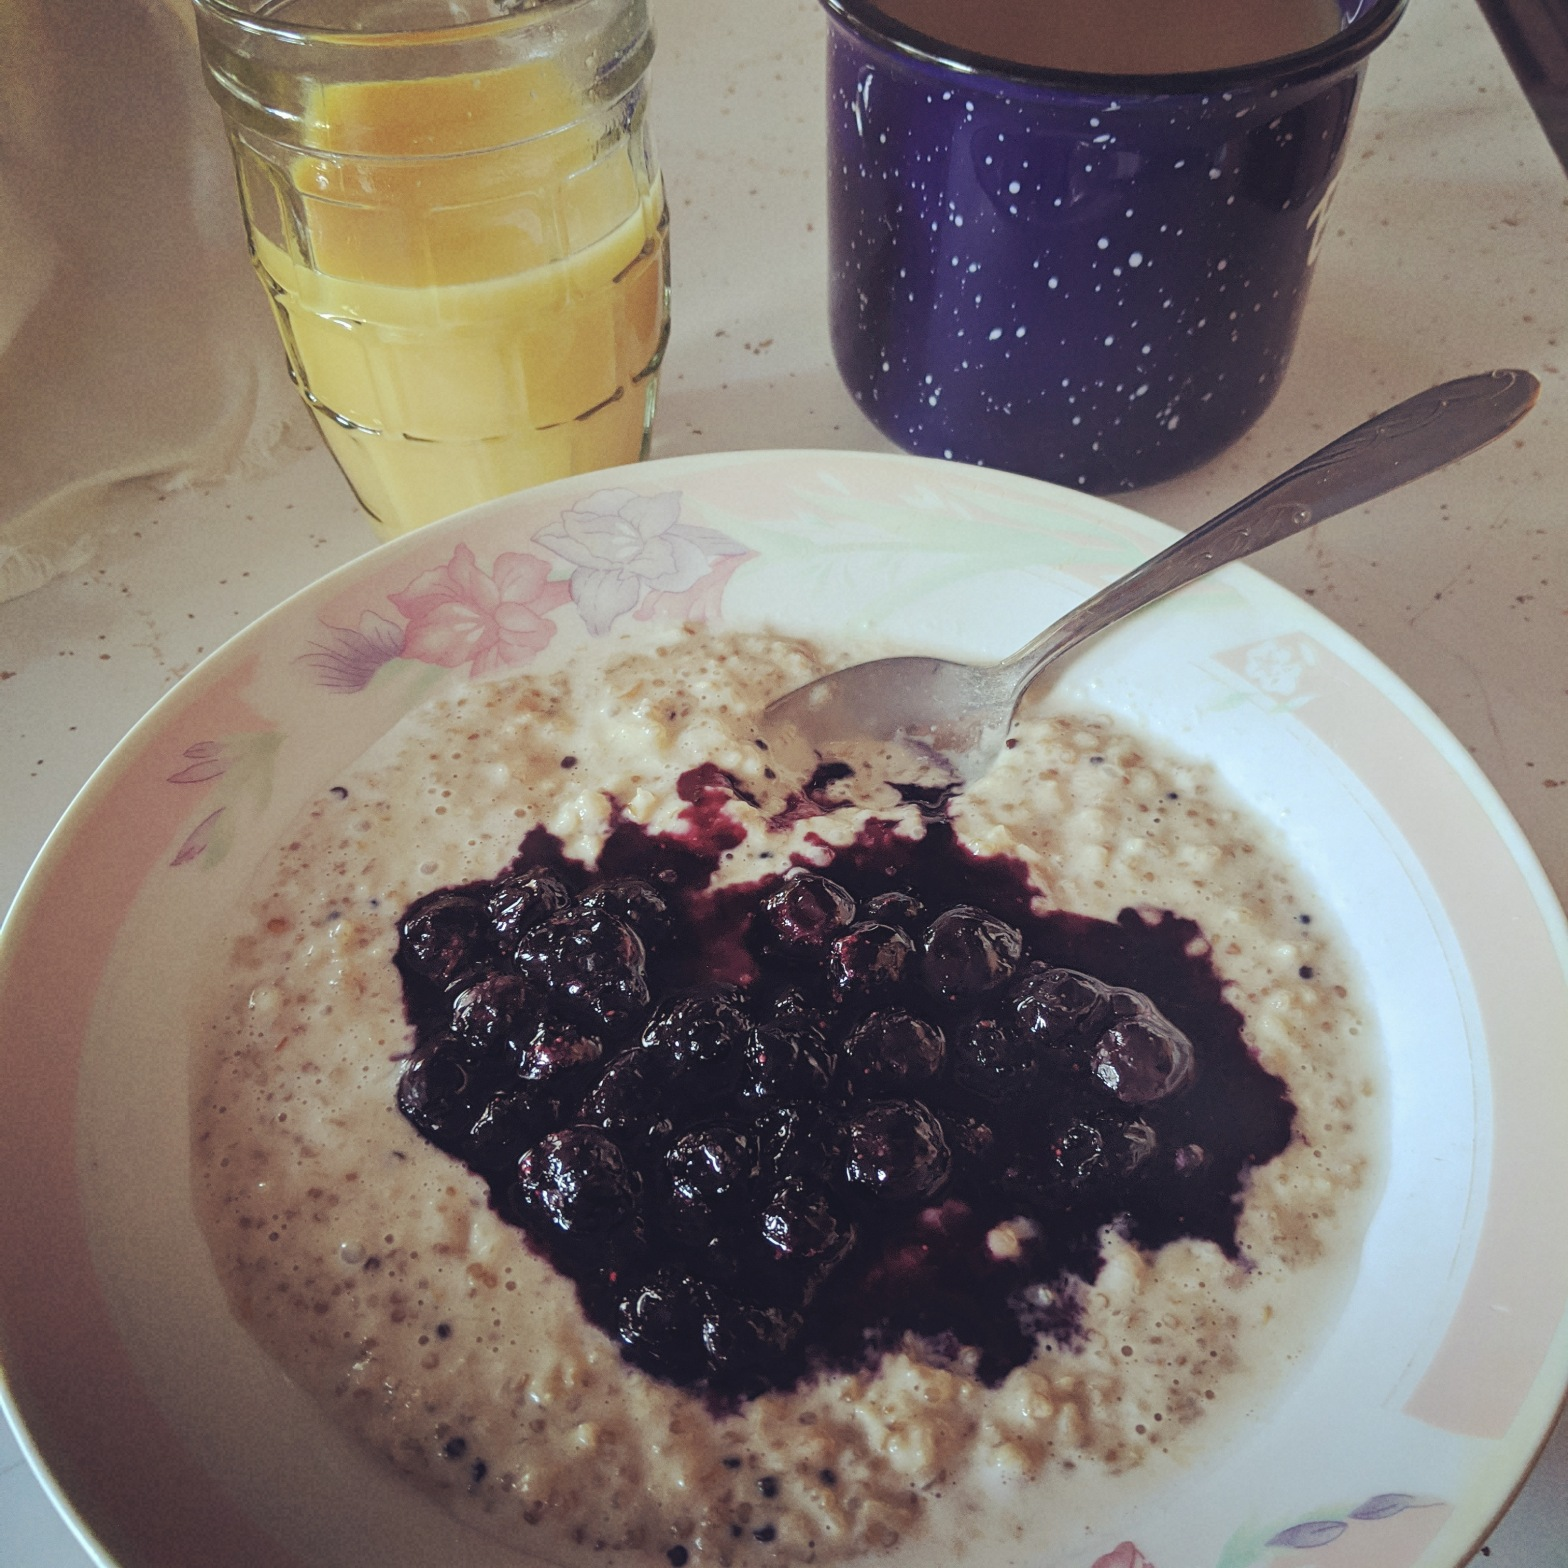 Oatmeal and Quinoa Porridge with Blueberry Compote